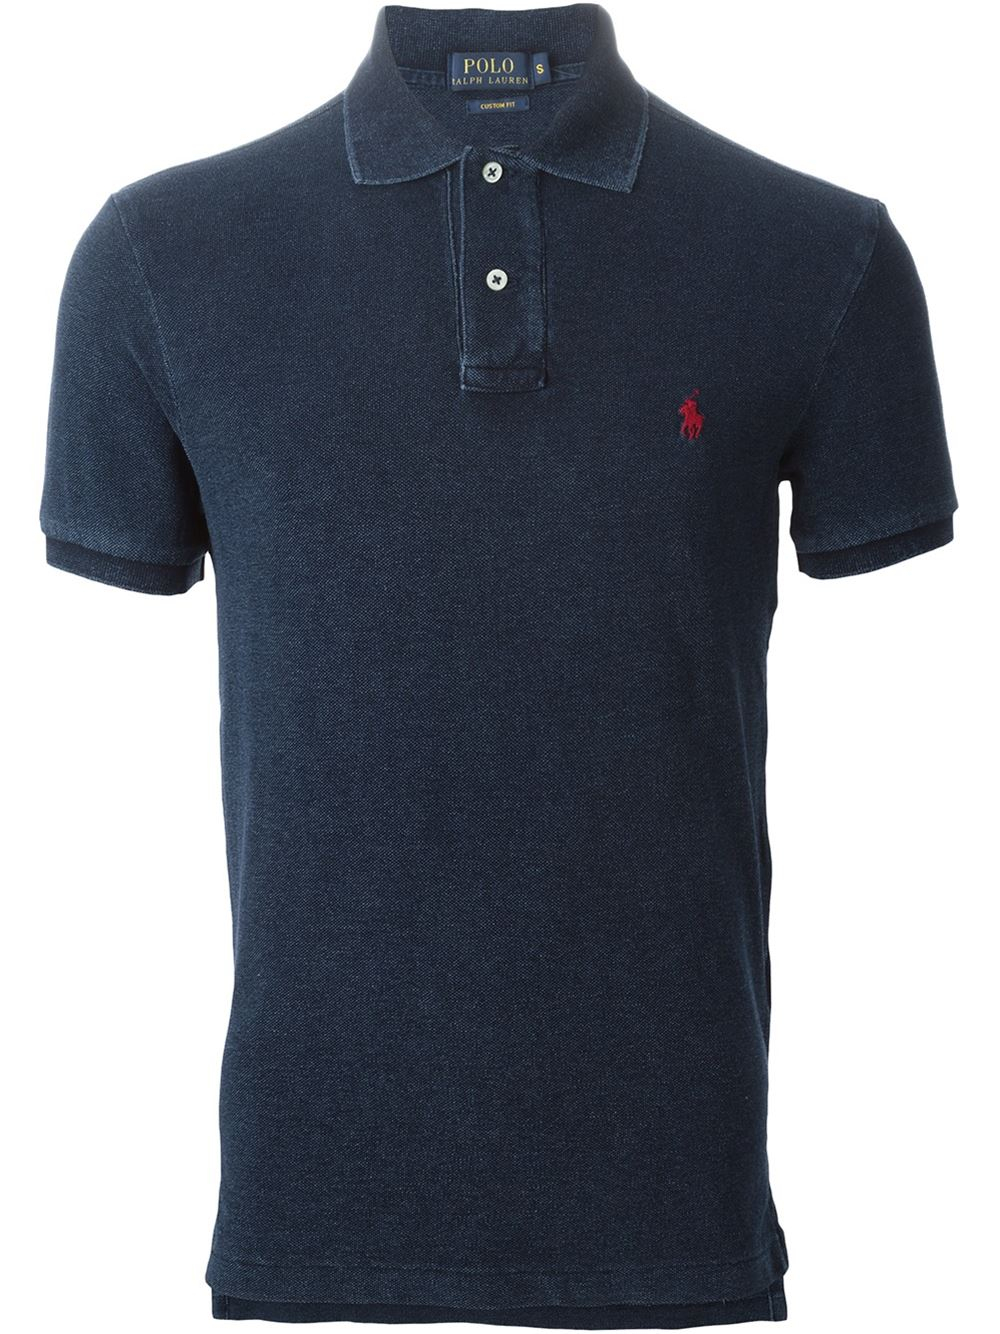 Polo ralph lauren embroidered logo polo shirt in black for for Polo shirts with logos